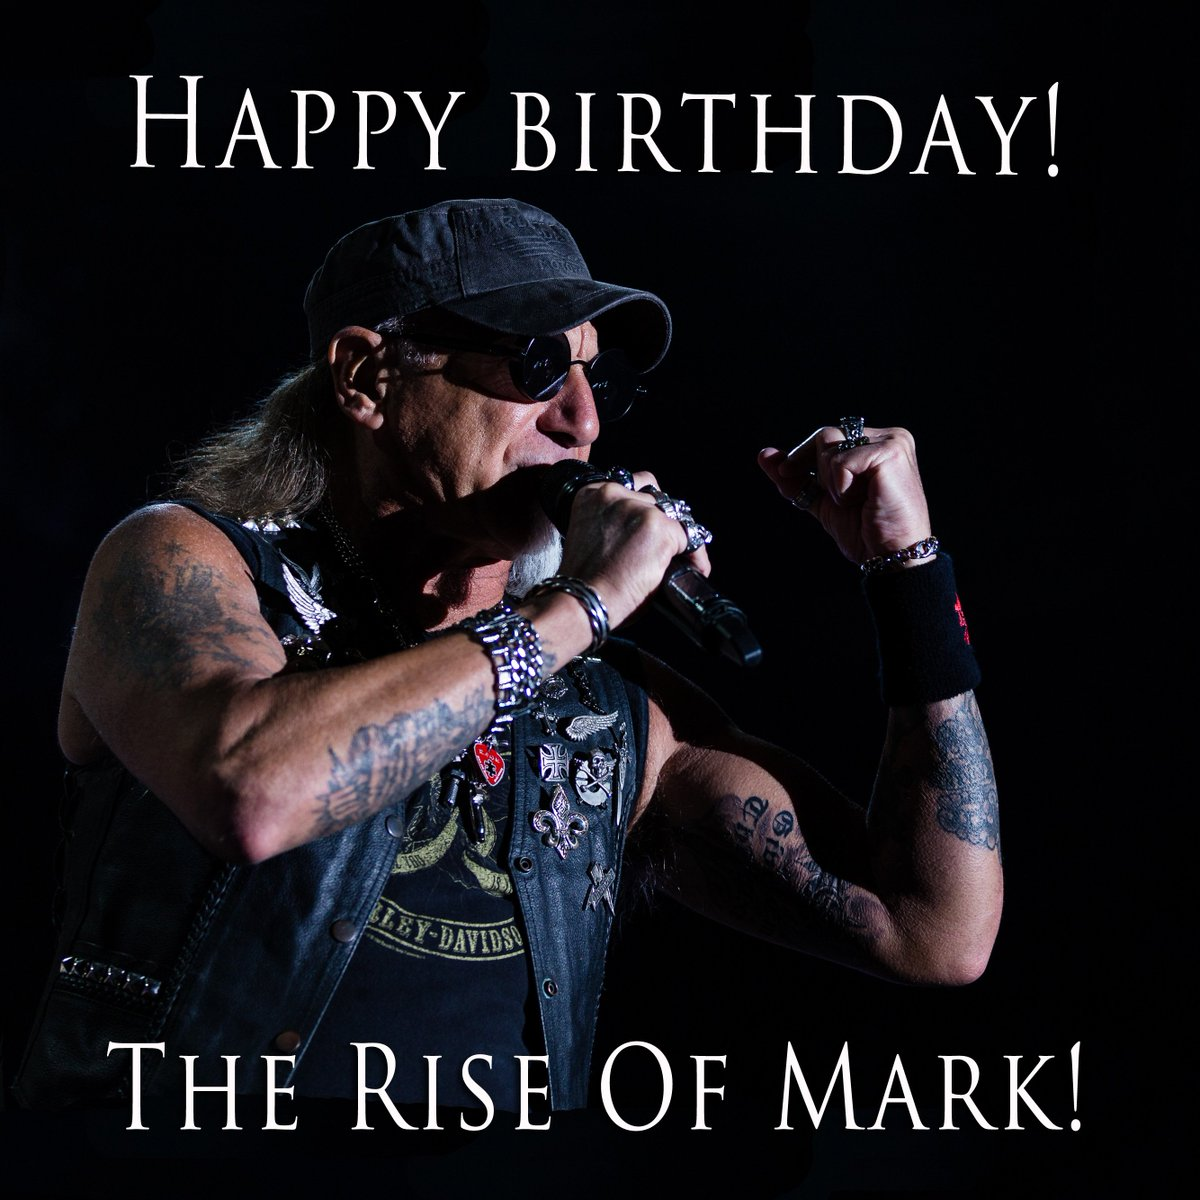 Join us in wishing Mark a very Happy Birthday! #MarkTornillo #ACCEPT #ACCEPTtheBAND #happybirthday #TROC #RockStar https://t.co/W80Sy241ja